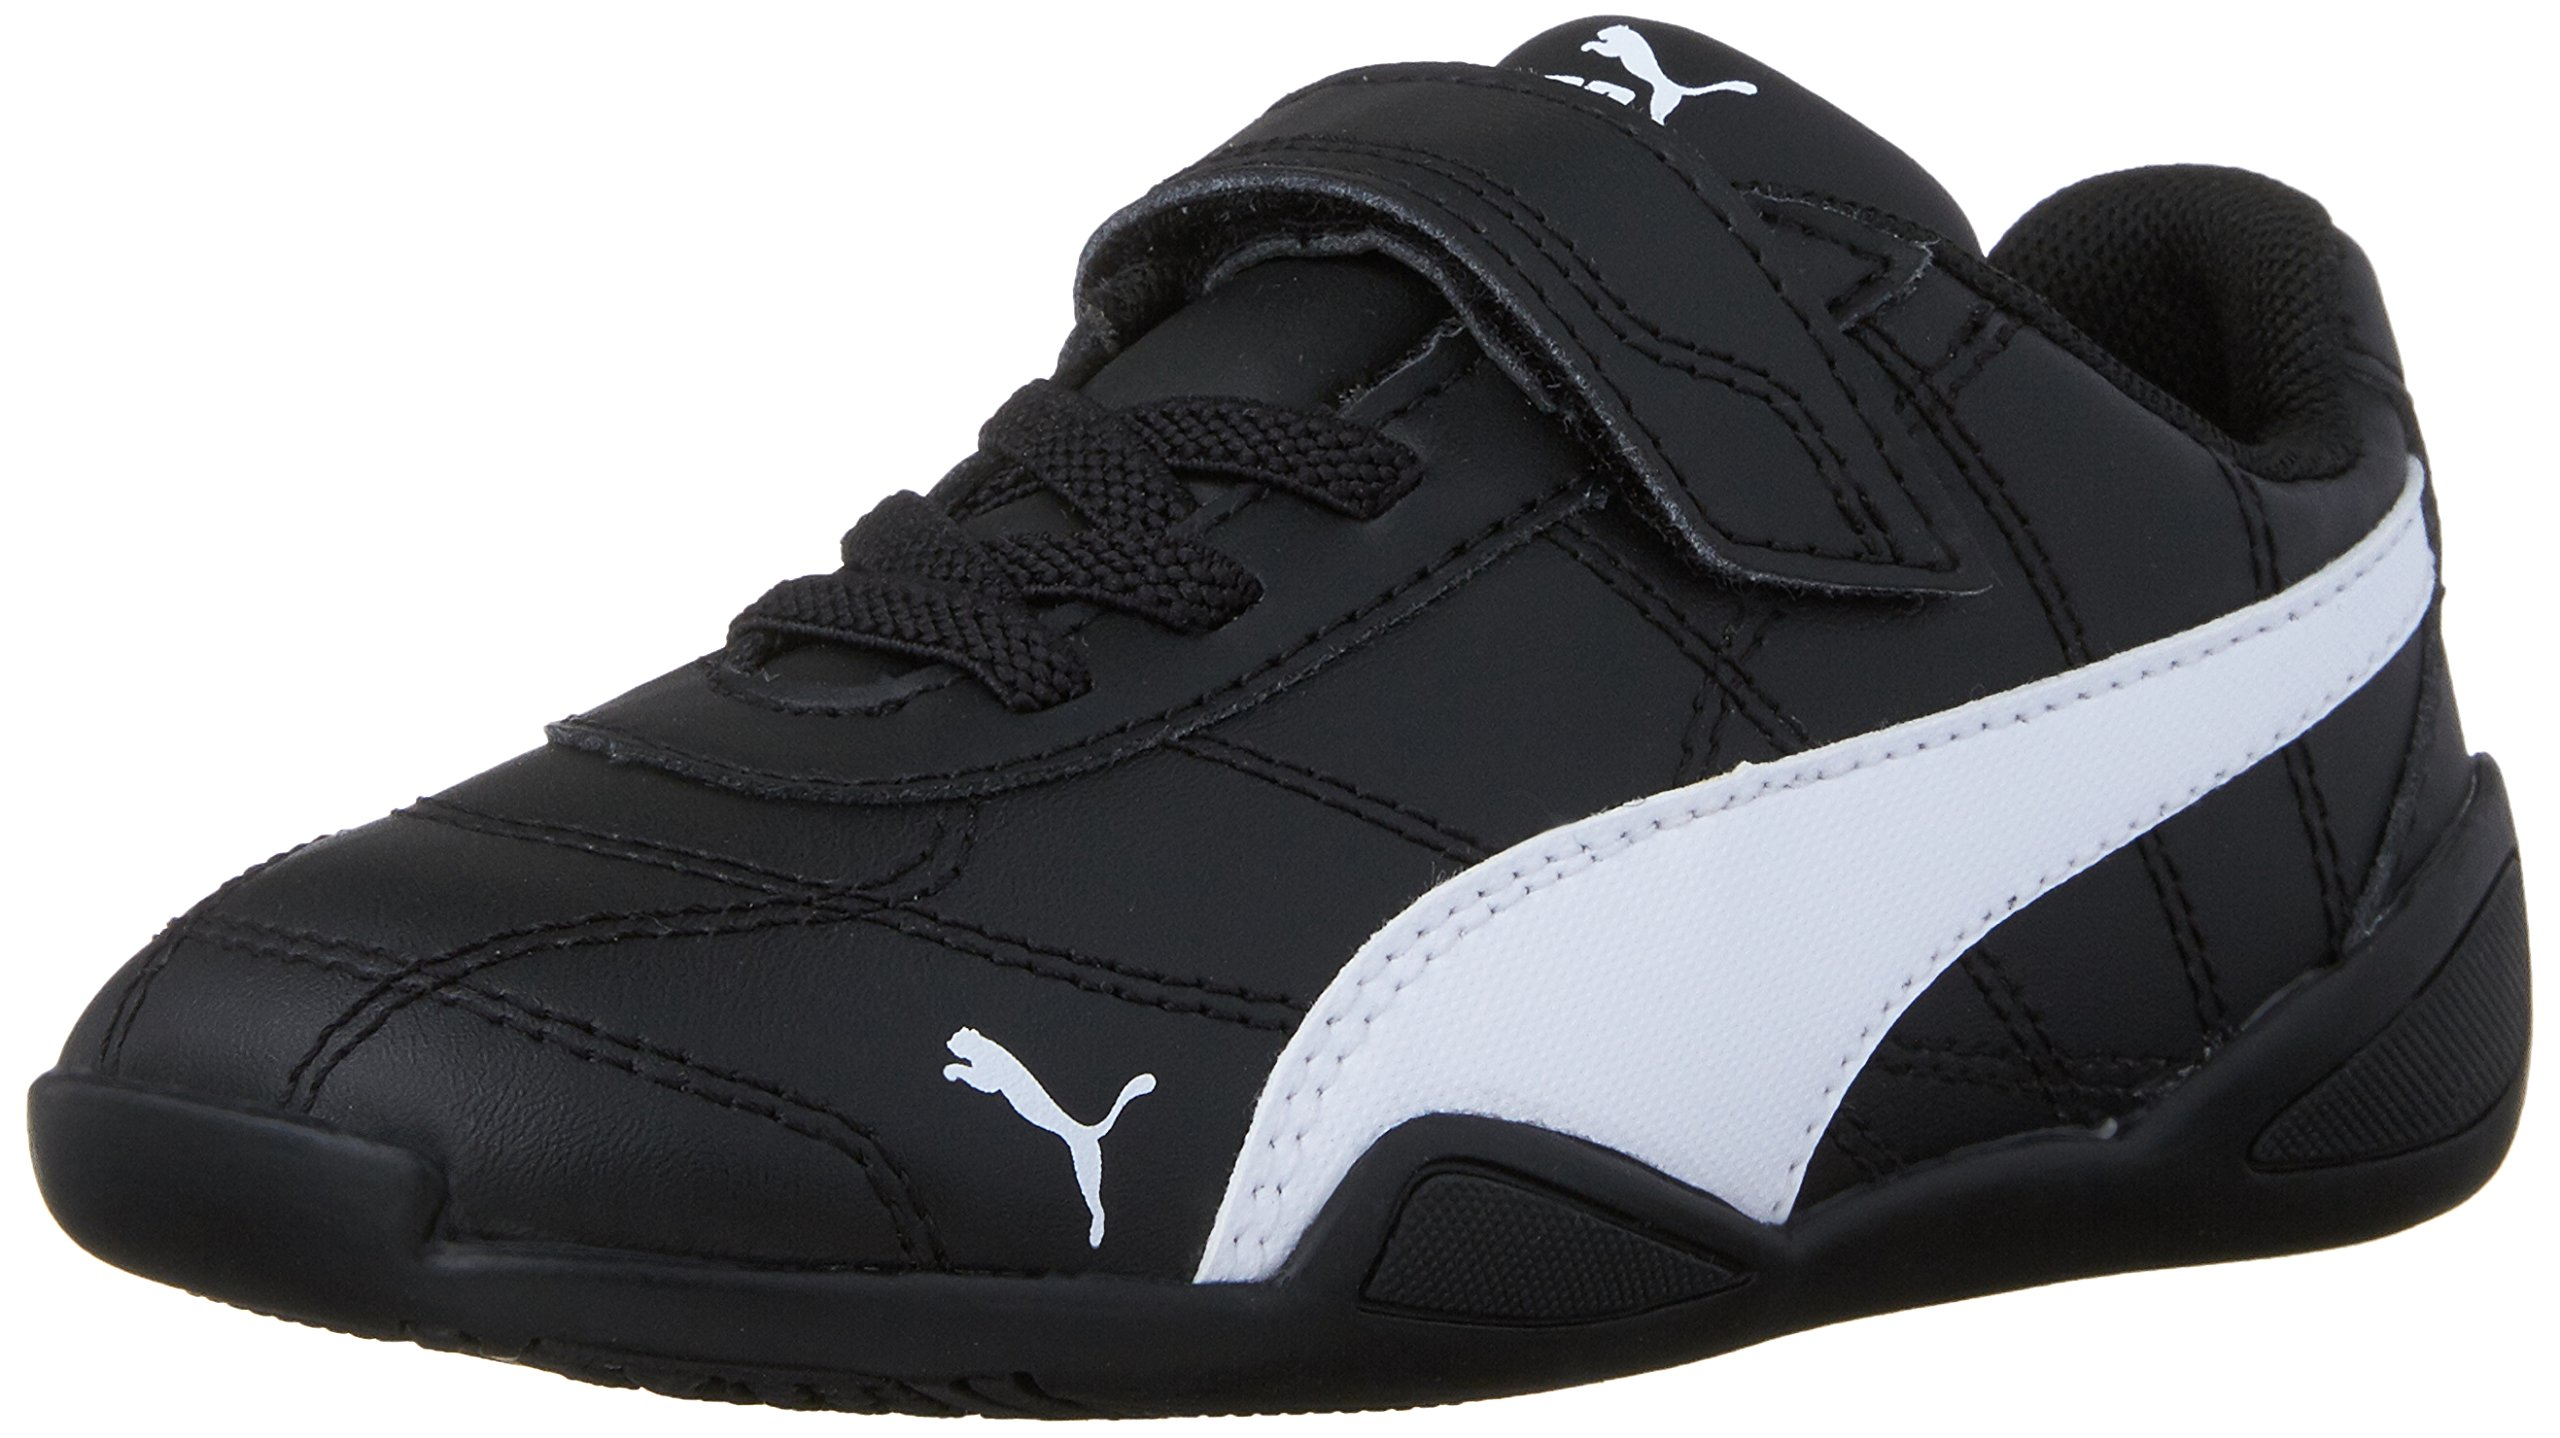 PUMA Boys' Tune CAT 3 V INF Sneaker Black White, 8 M US Toddler by PUMA